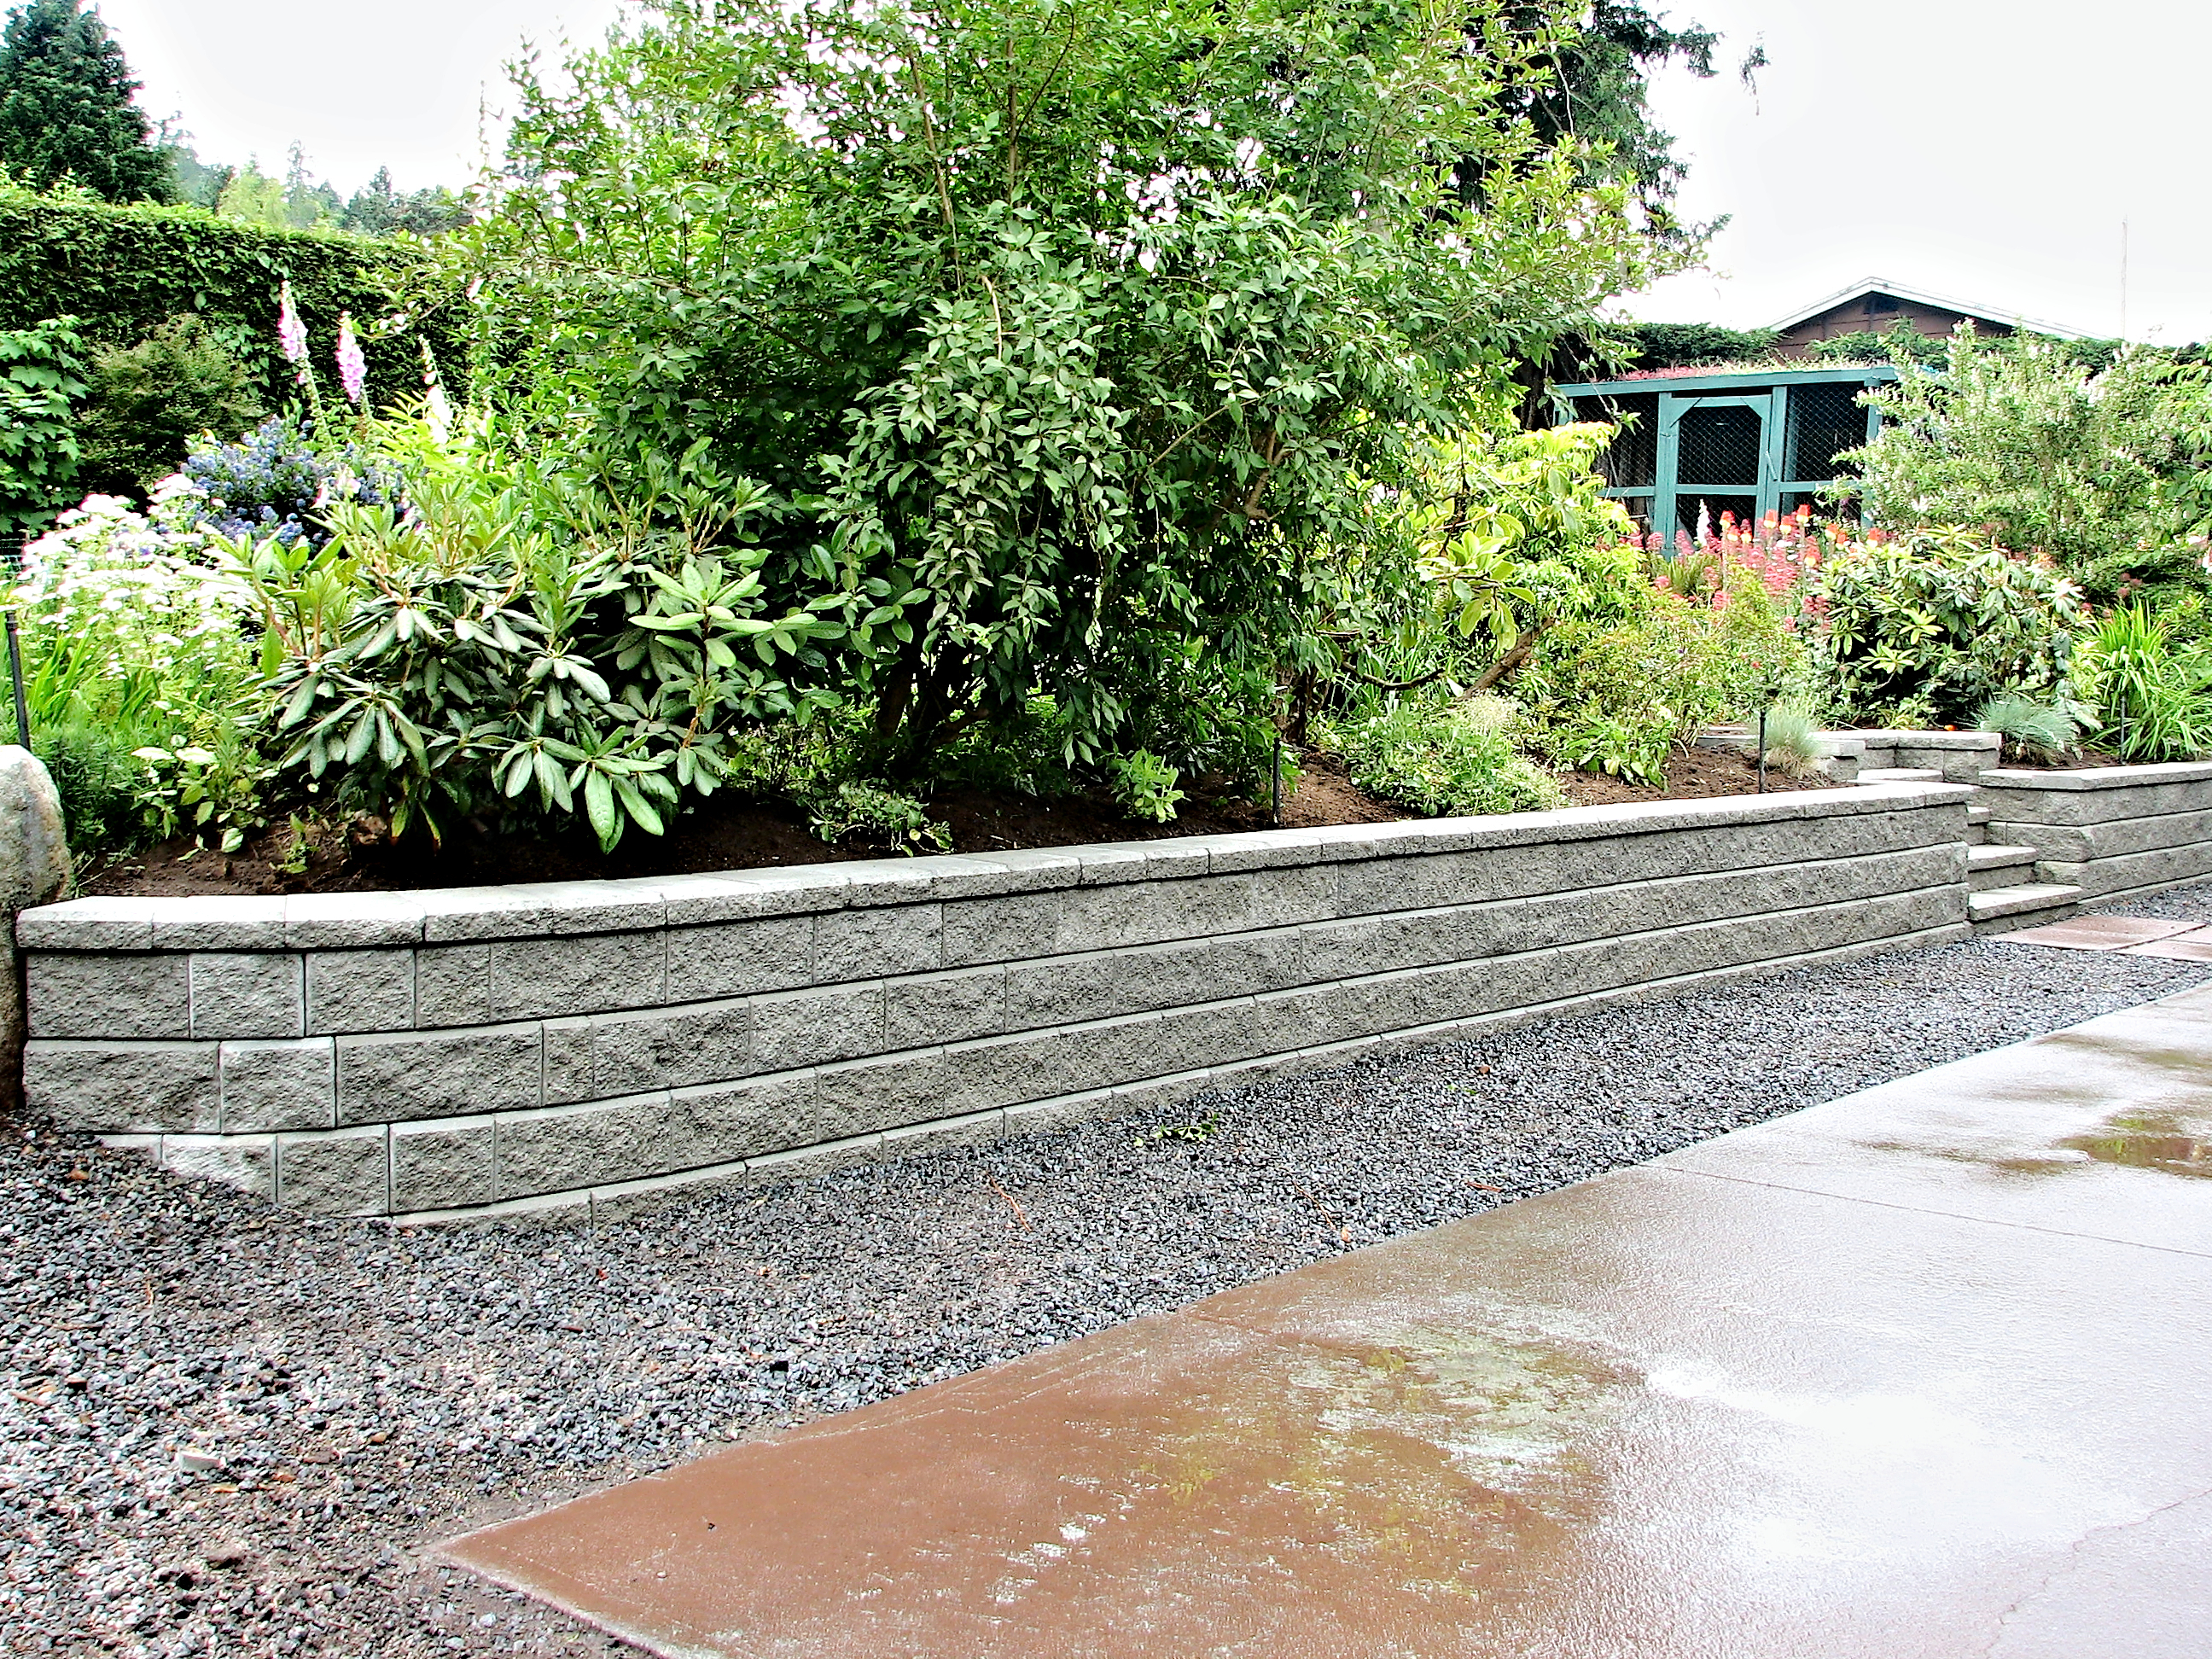 A beautiful view of a retaining wall bui